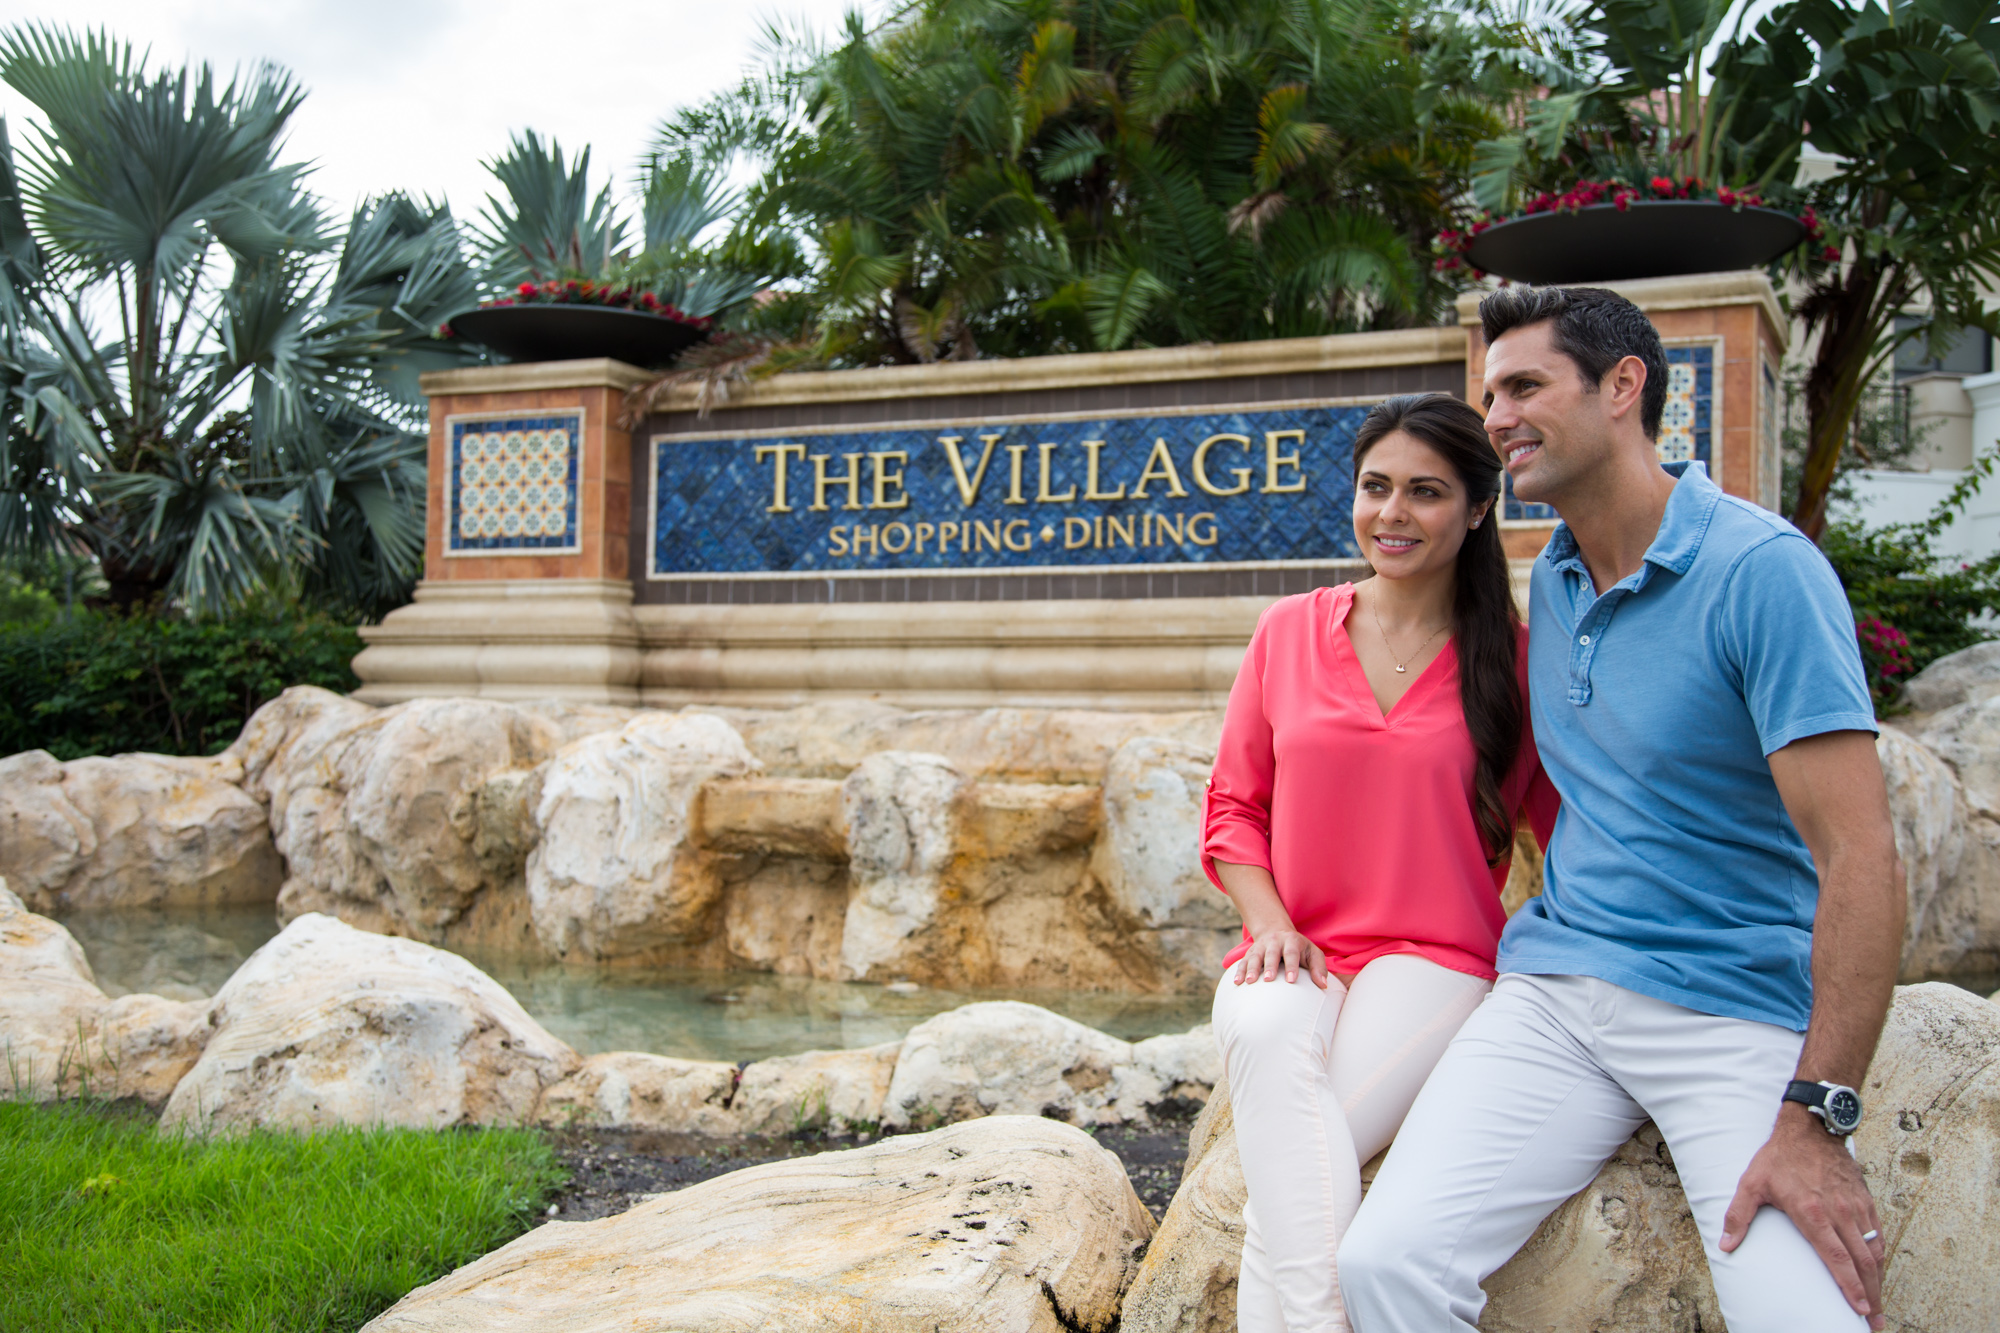 TheVillageGulfstream The Village Shopping and Dining Sign